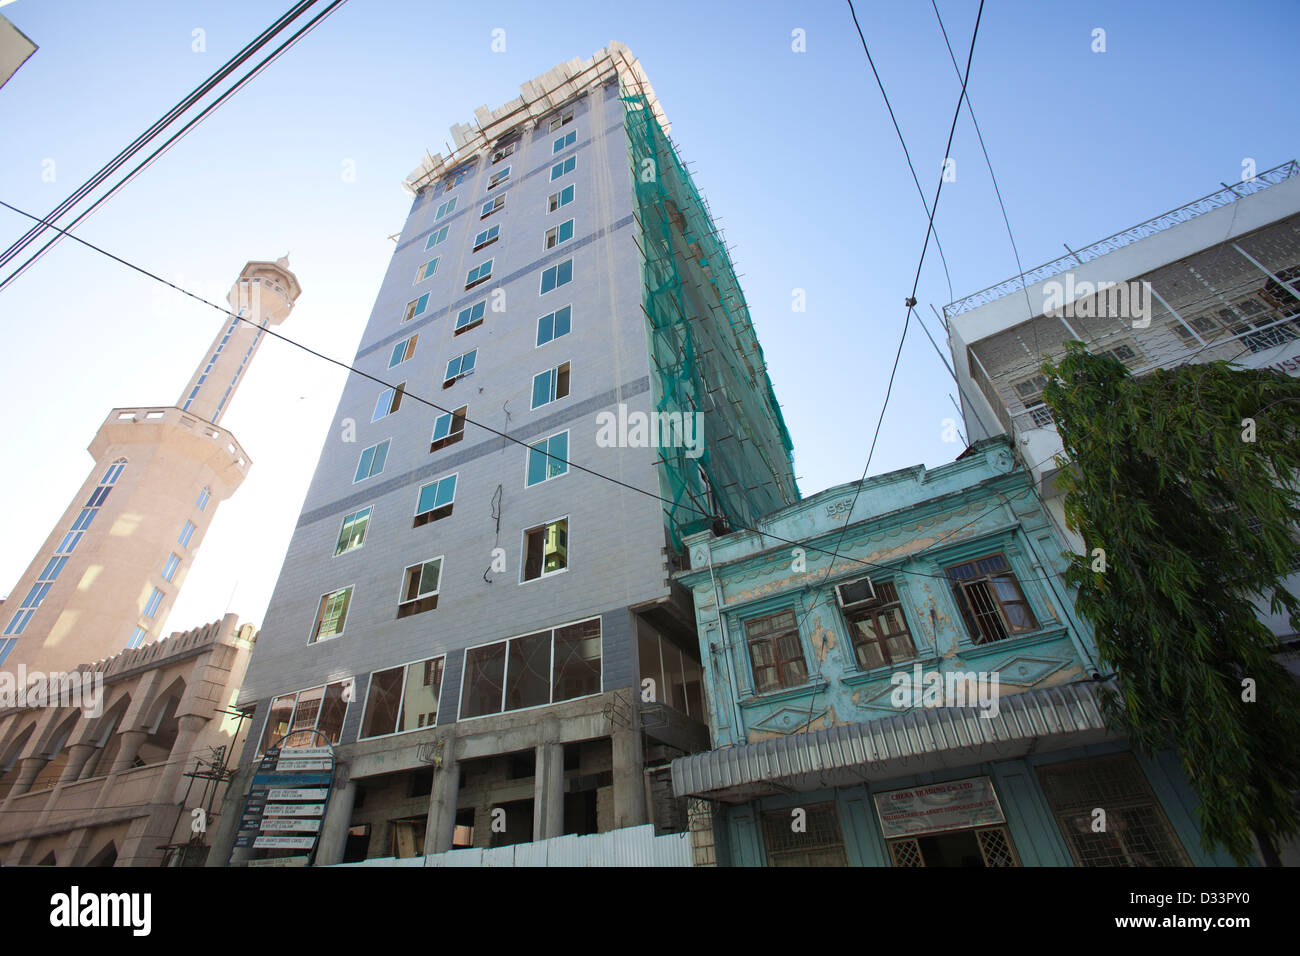 Hi-rise building under construction, next to a 1930s Indian building and Mosque, Dar es Salaam, Tanzania. - Stock Image